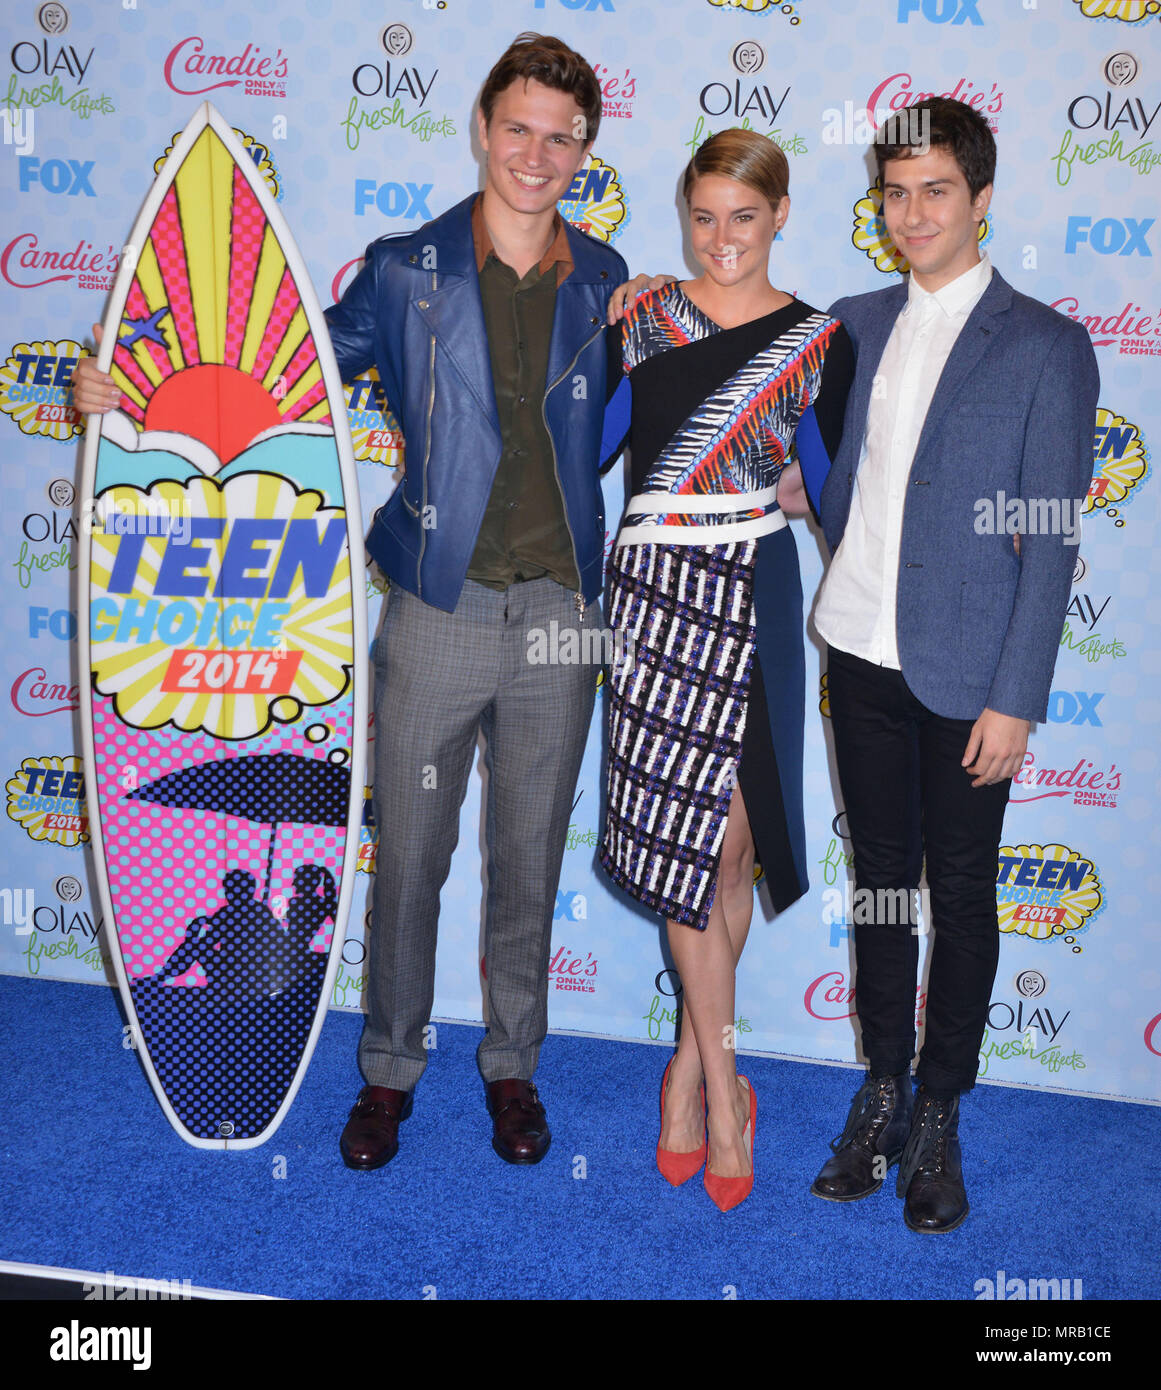 Ansel Elgort, Shailene Woodley, Nat Wolff 281 at Teen Choice Awards 2014 qt the Shrine Auditorium in Los Angeles.Red Carpet Event, Vertical, USA, Film Industry, Celebrities,  Photography, Bestof, Arts Culture and Entertainment, Topix Celebrities fashion , Best of, Event in Hollywood Life - California,  Red Carpet, USA, Film Industry, Celebrities,  movie celebrities, TV celebrities, Music celebrities, Photography,  Arts Culture and Entertainment,   , inquiry tsuni@Gamma-USA.com , vertical, several people,, trophy, back stage - Stock Image